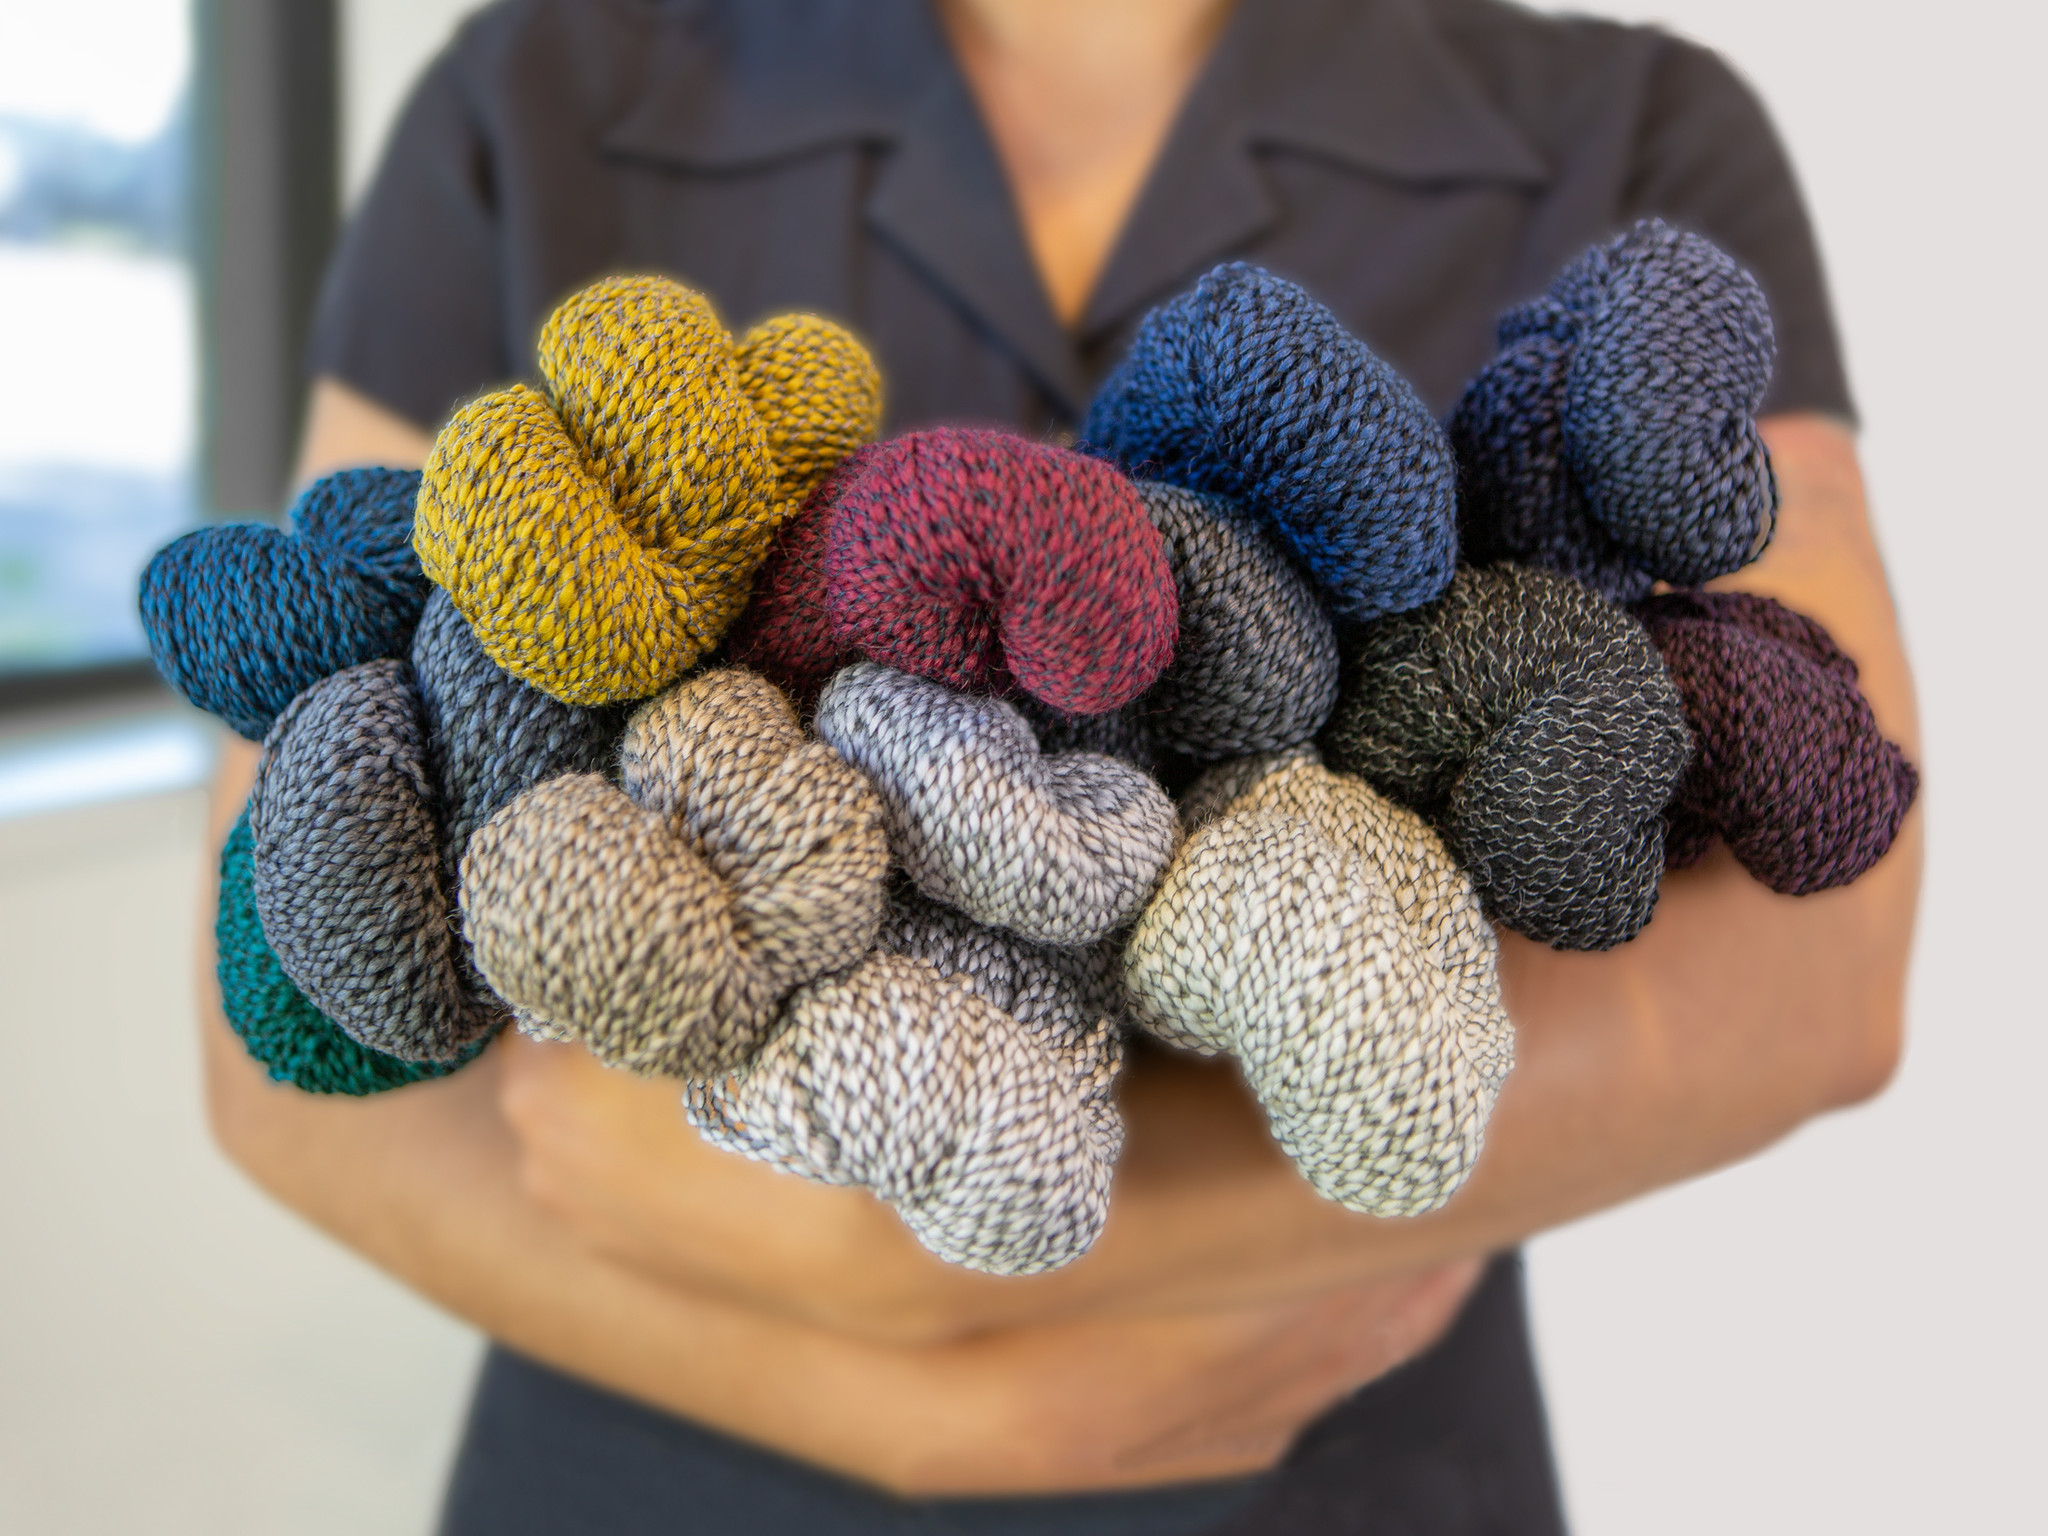 ShiBui Knits Nest Yarn - new at A Good Yarn Sarasota